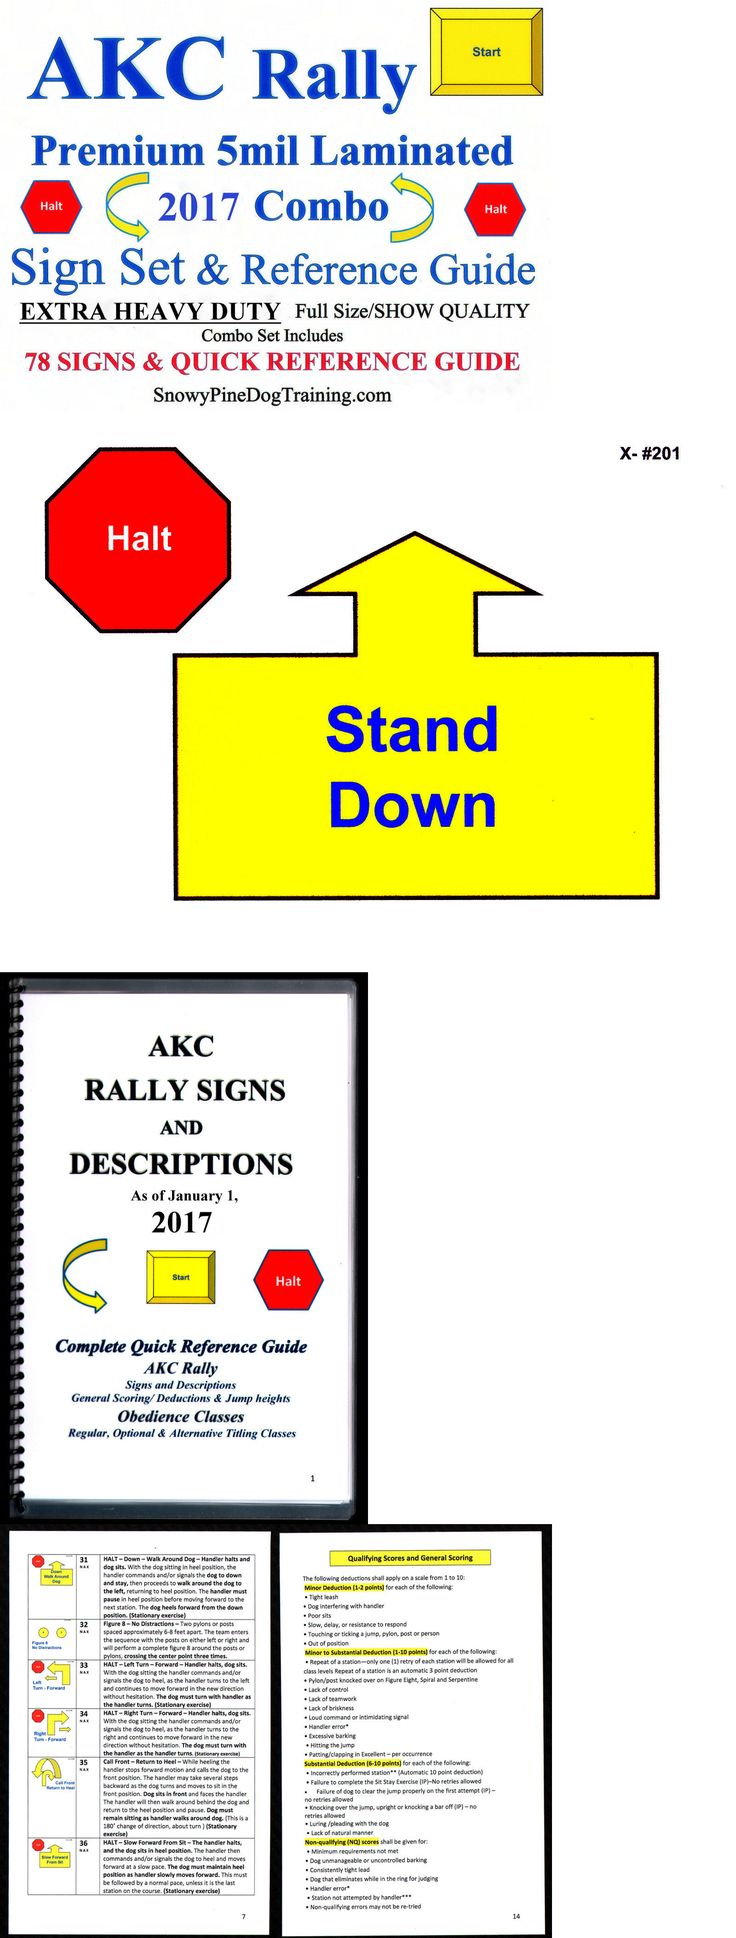 Other Dog Training and Obedience 146245: Akc Dog Rally 2017 Combo Sign Set Extra Heavy/5Ml Laminated Show Quality + Guide BUY IT NOW ONLY: $92.95